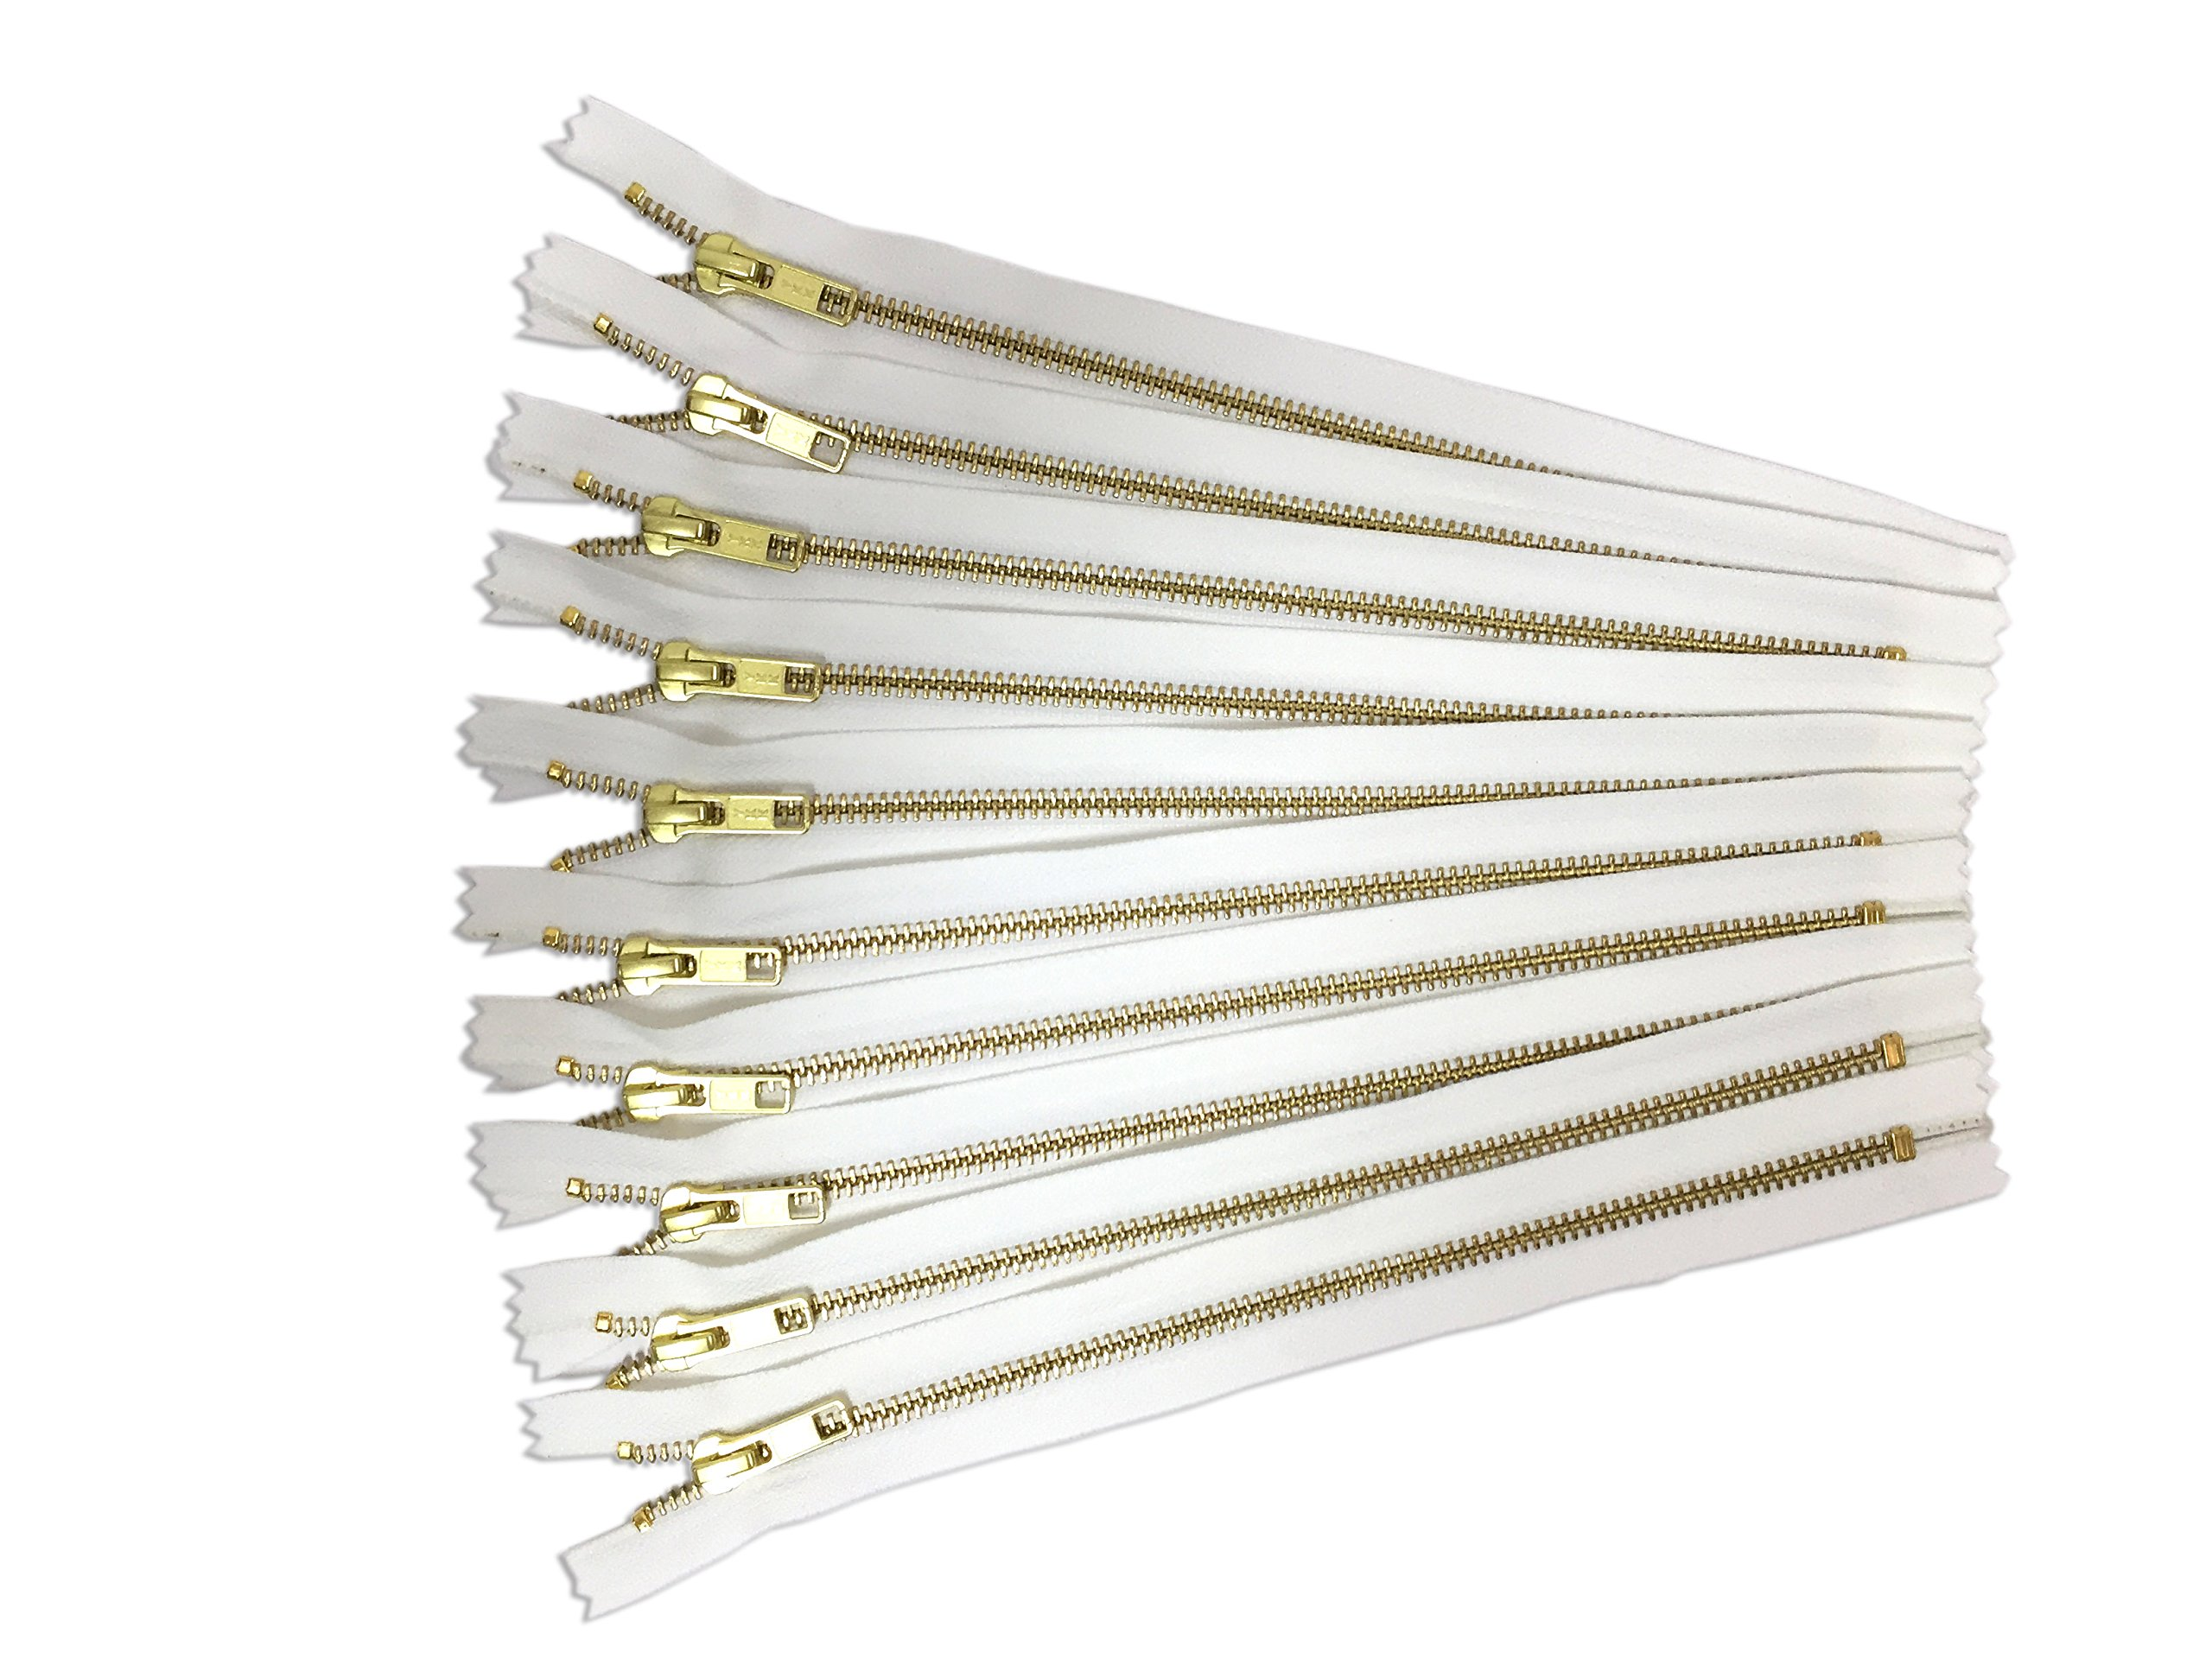 YKK Zippers White Gold No. 5 Metal Zips 14 inch Set of 12 by Craftbot